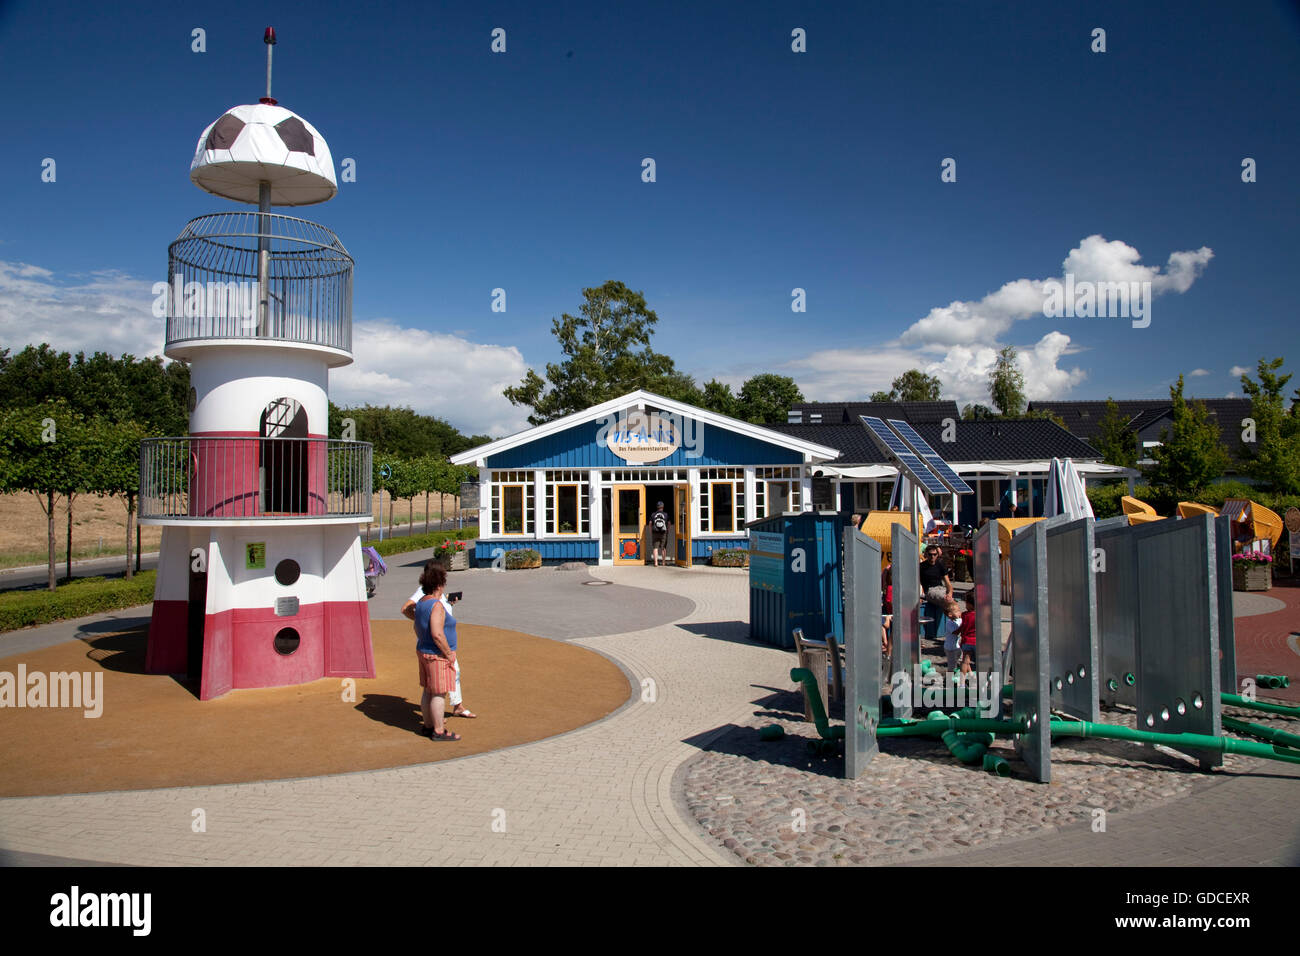 Playground, Vis-A-vis family restaurant, Baltic Sea spa of Zingst, Fischland Darss Zingst peninsula - Stock Image